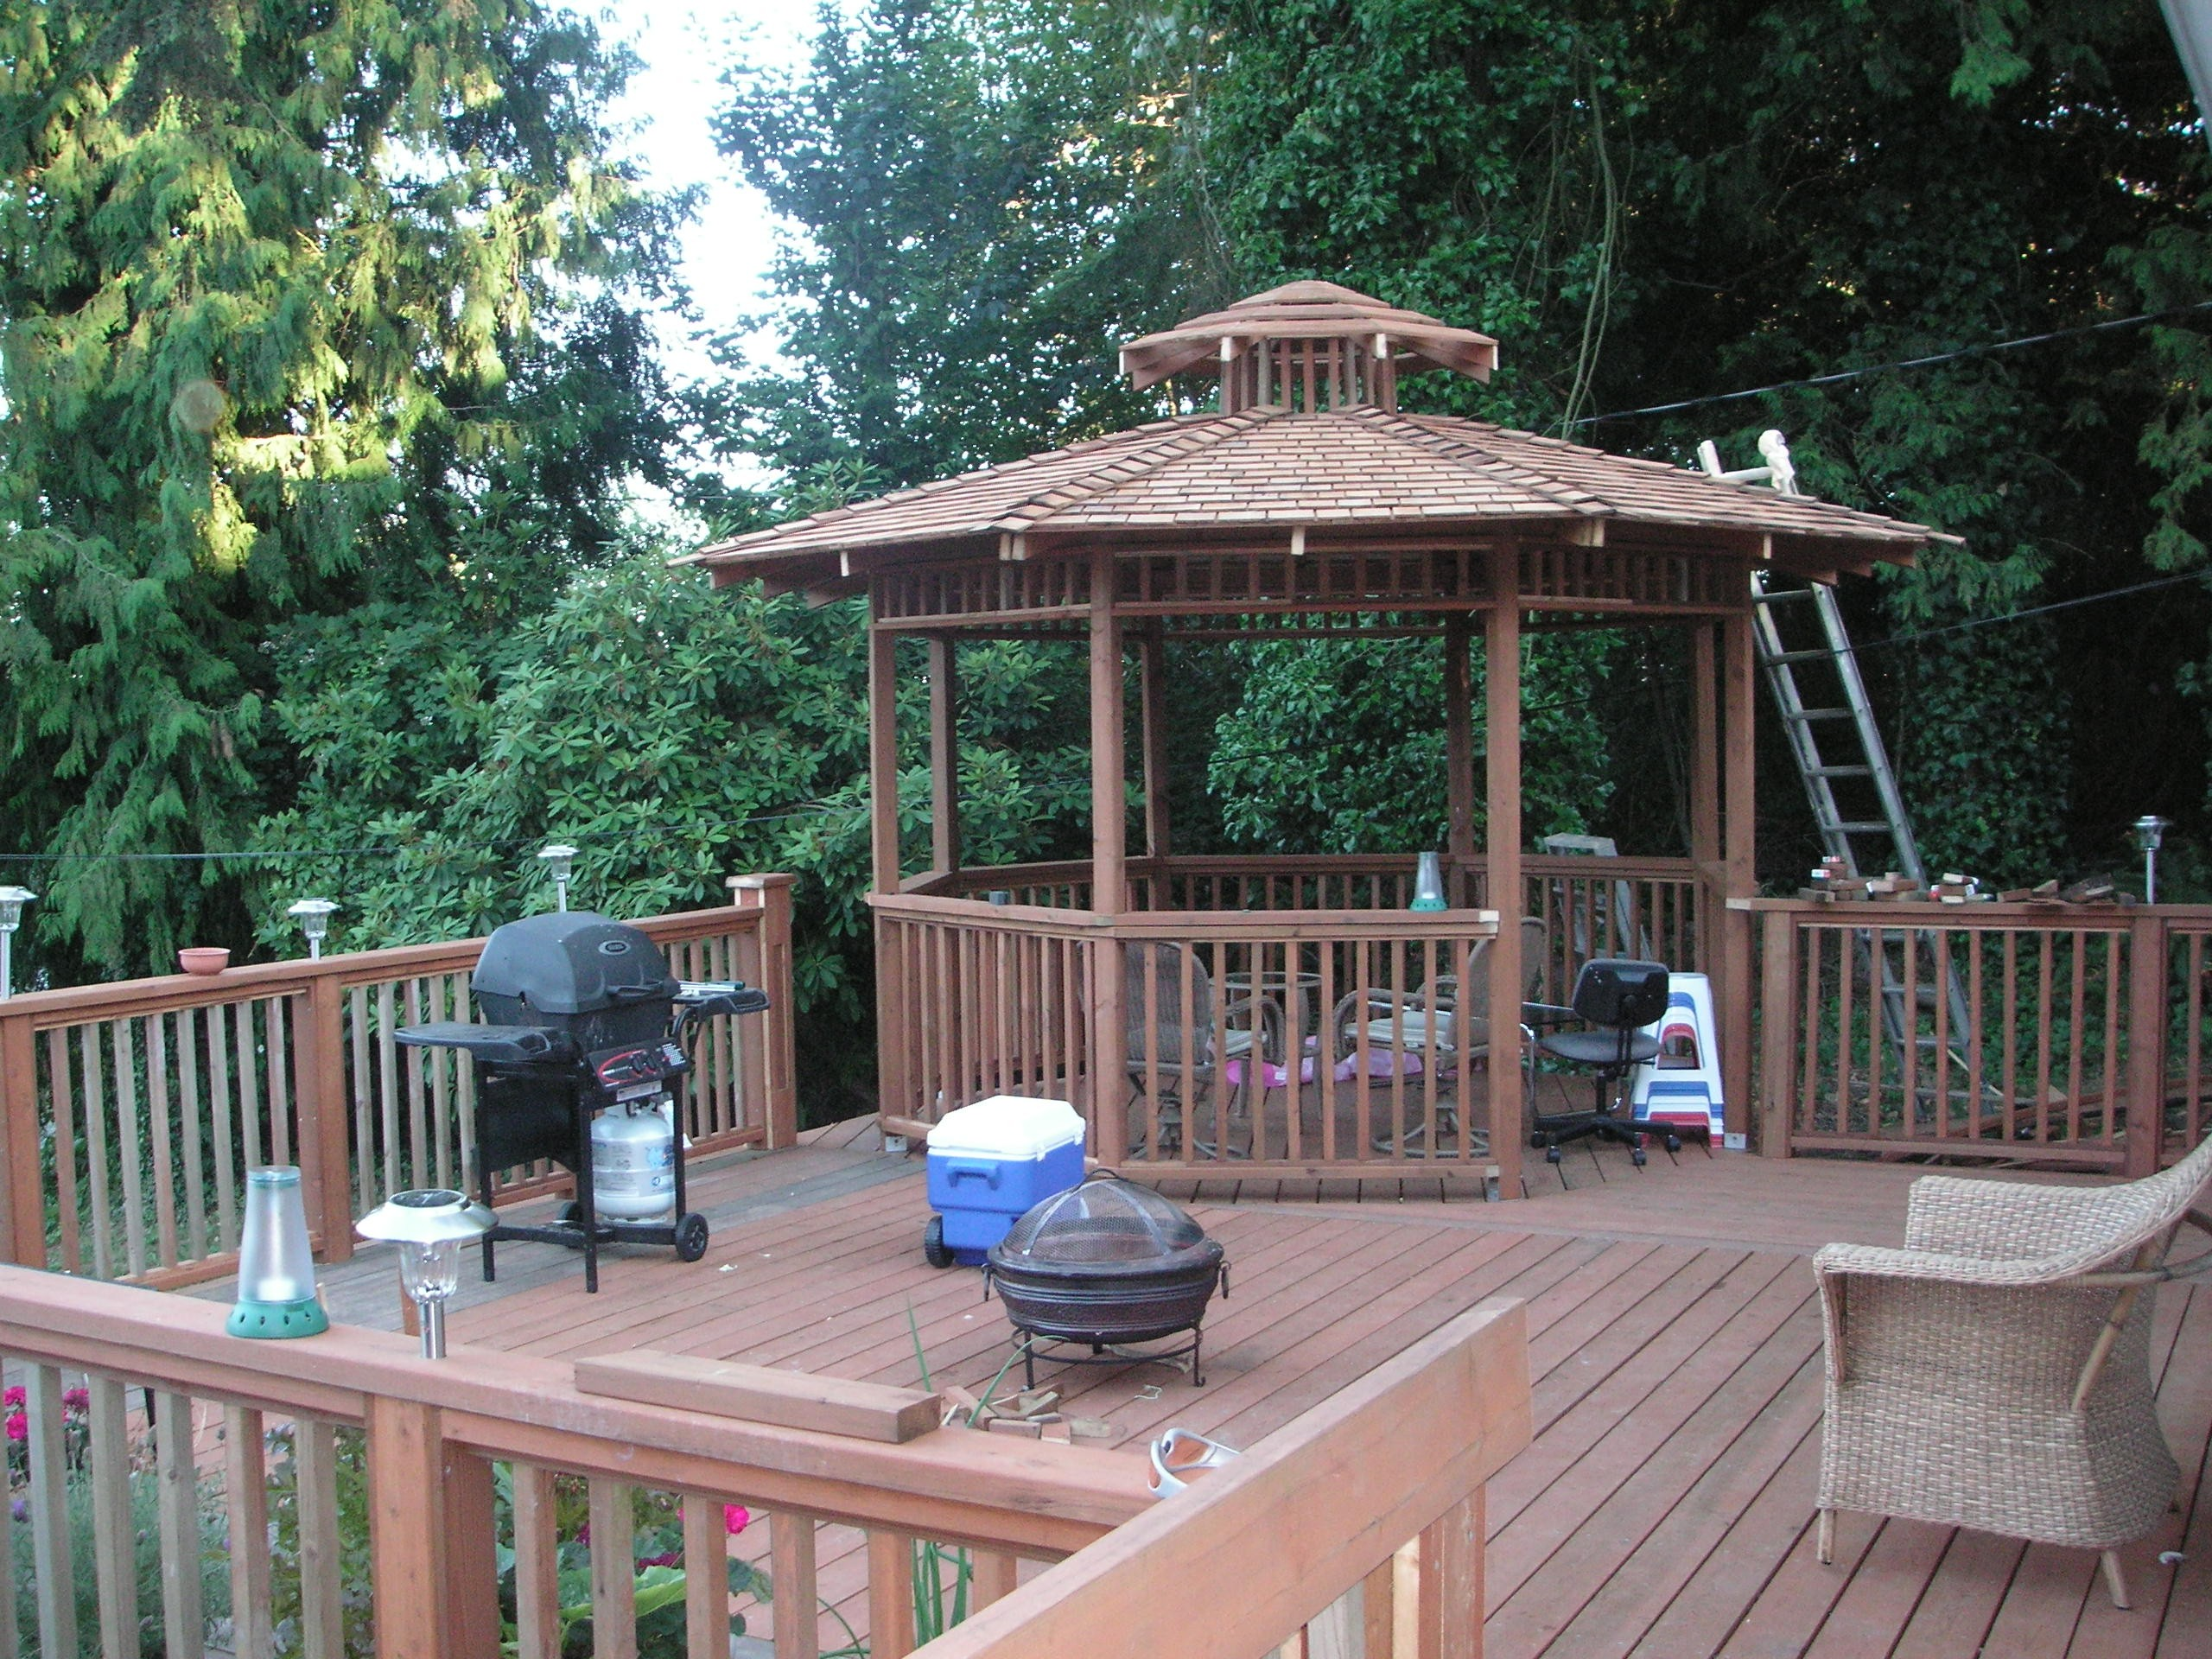 Insider How To Build A Gazebo On A Deck Garden Landscape